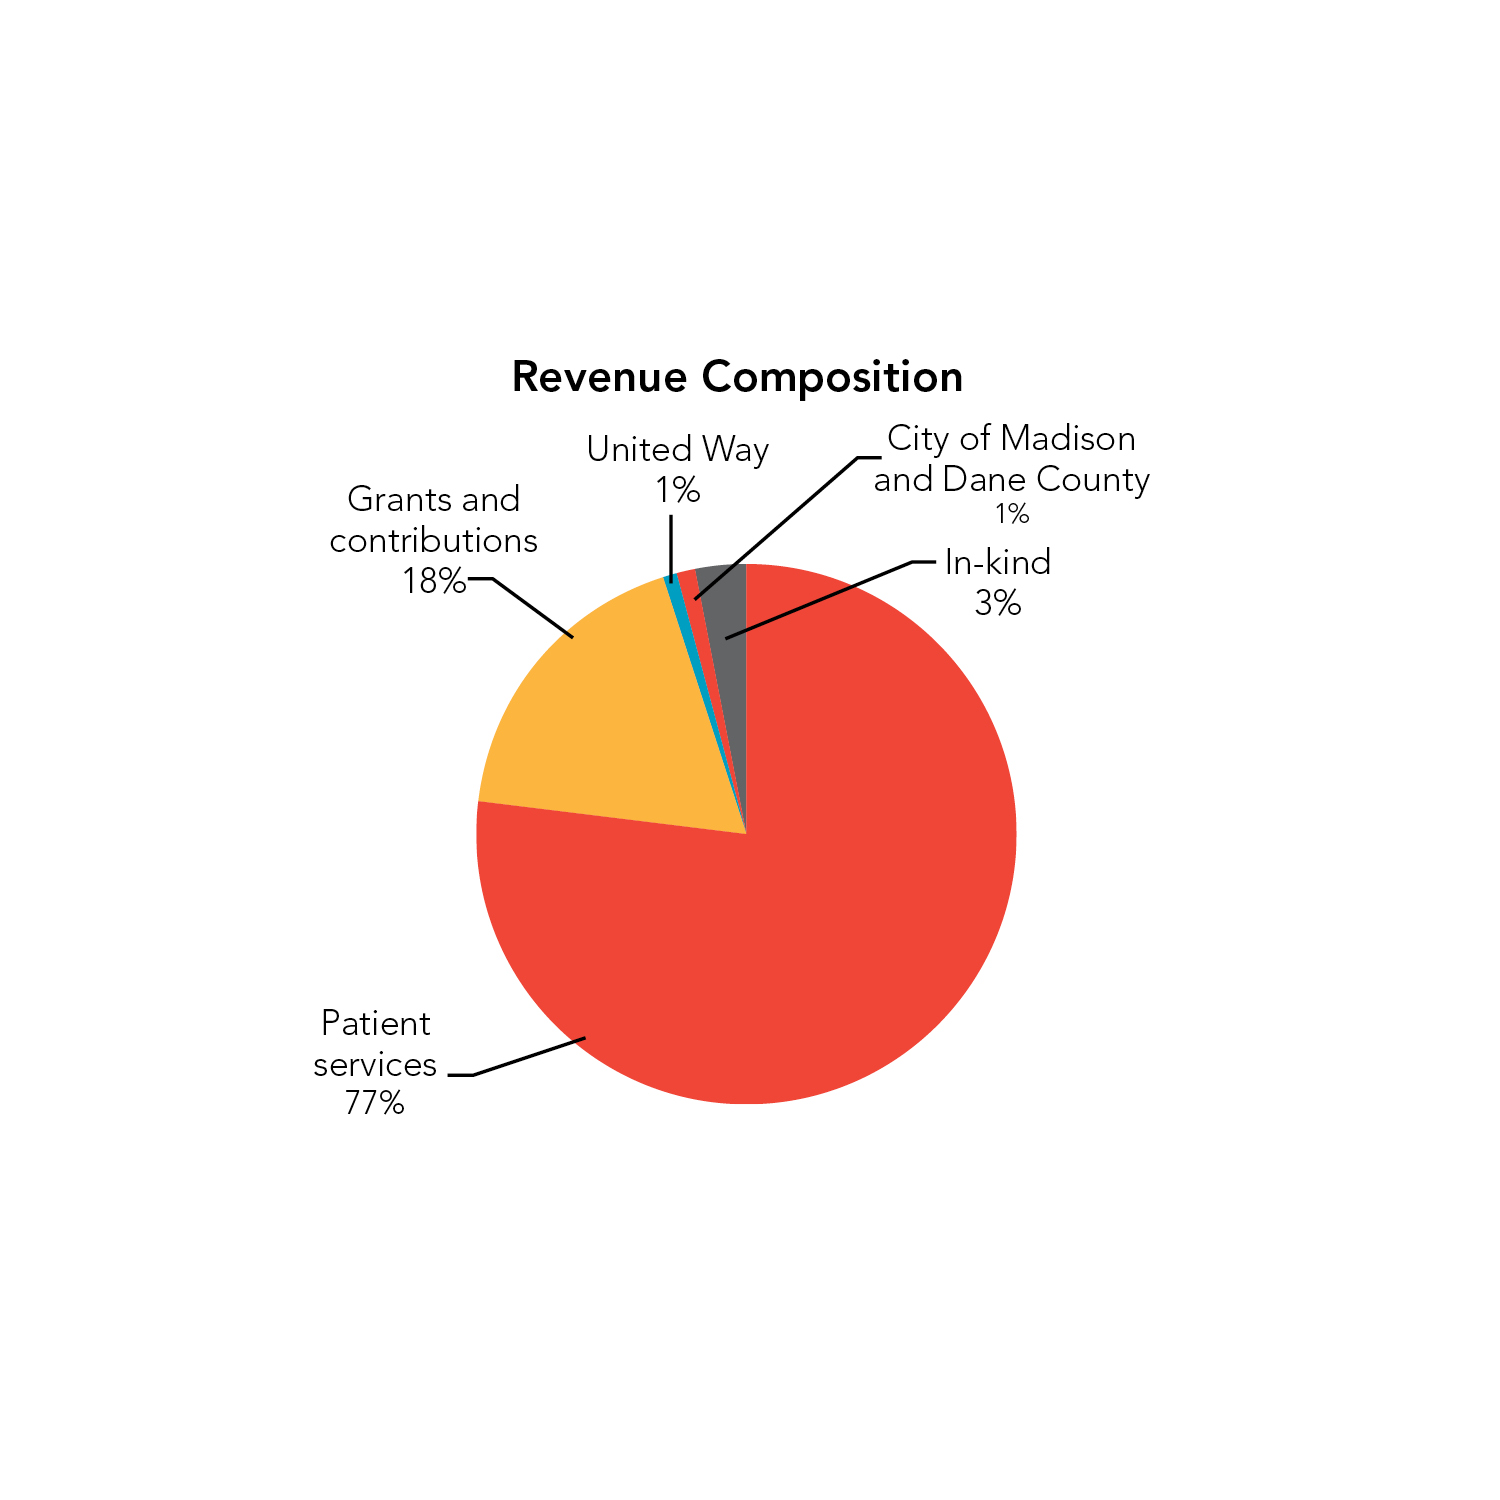 Revenue Composition: Patient services 77%; Grants and contributions 18%; In-kind 3%; City o fMadison and Dane County 1%; United Way 1%